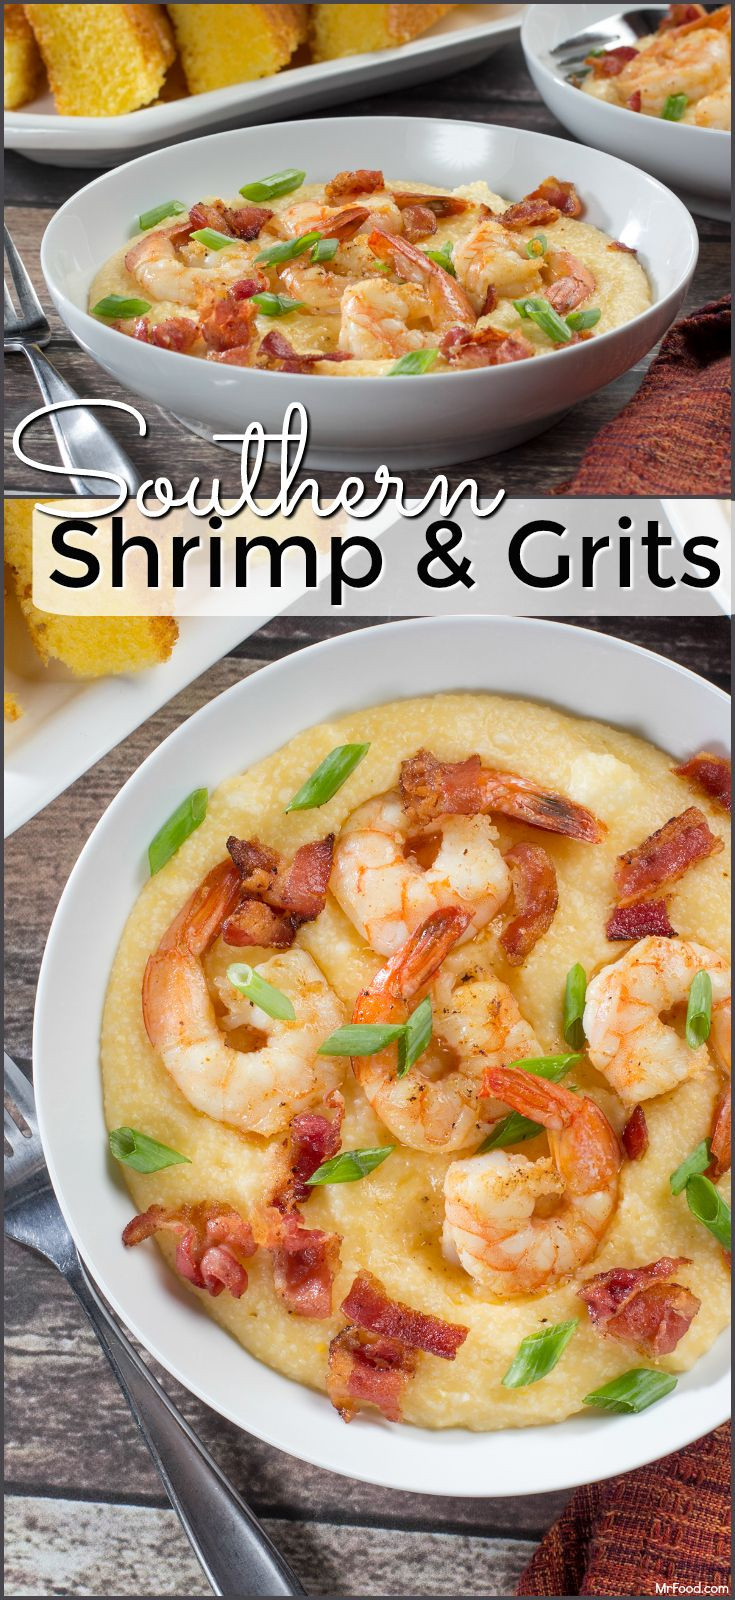 Southern Breakfast Recipes  Southern Shrimp and Grits Receta